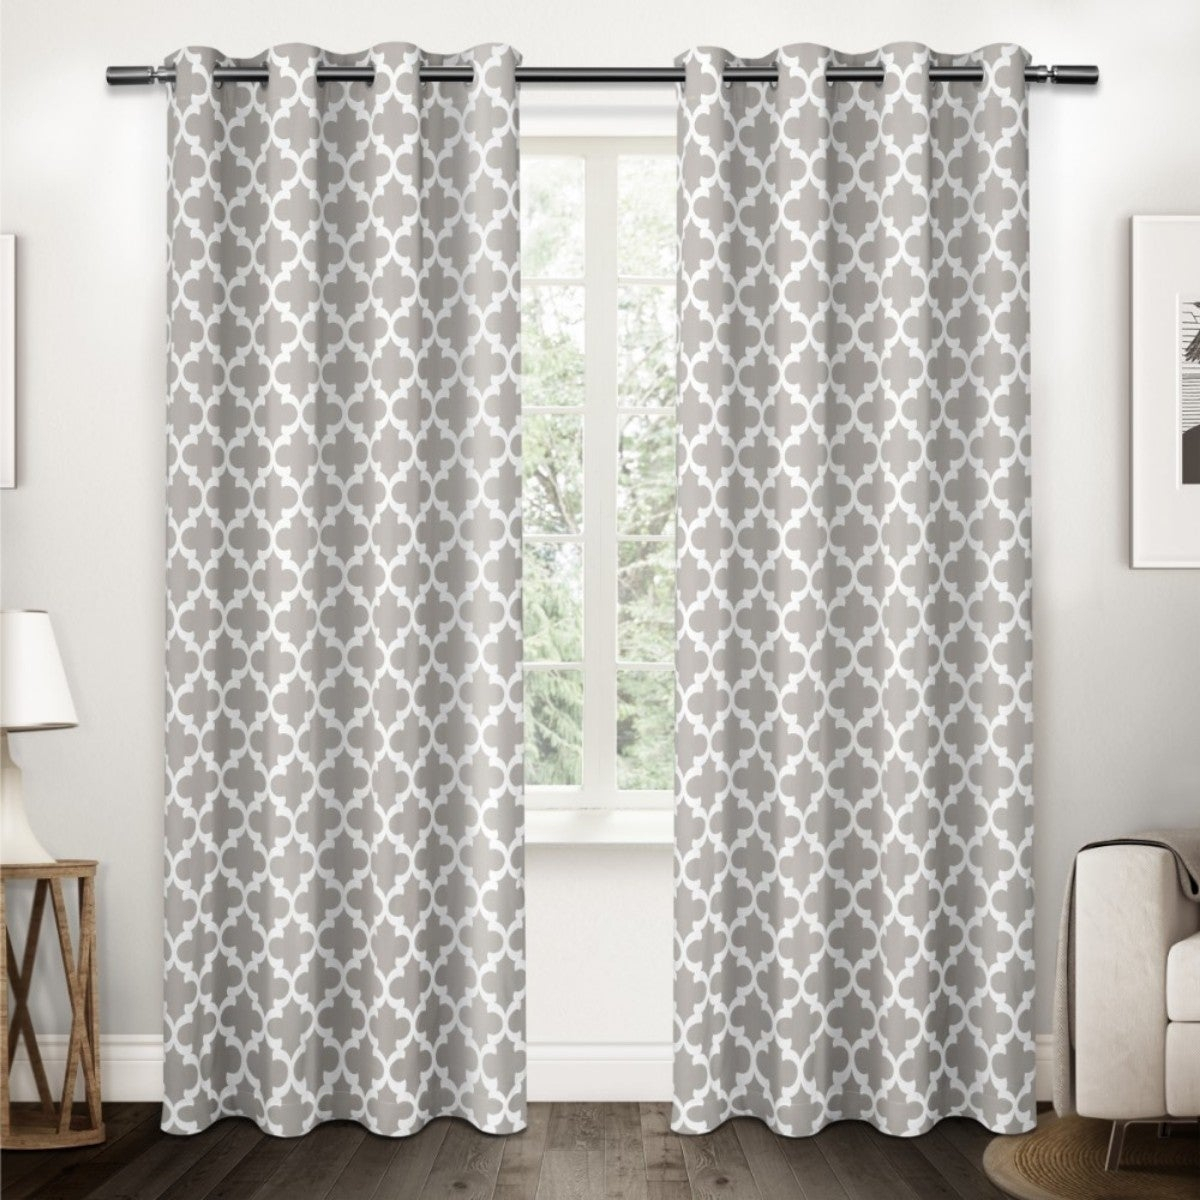 The Curated Nomad Goodlett Cotton Grommet Top Curtain Panel Pair | Overstock Shopping – The Best Deals On Curtains Within The Curated Nomad Duane Jacquard Grommet Top Curtain Panel Pairs (View 16 of 30)